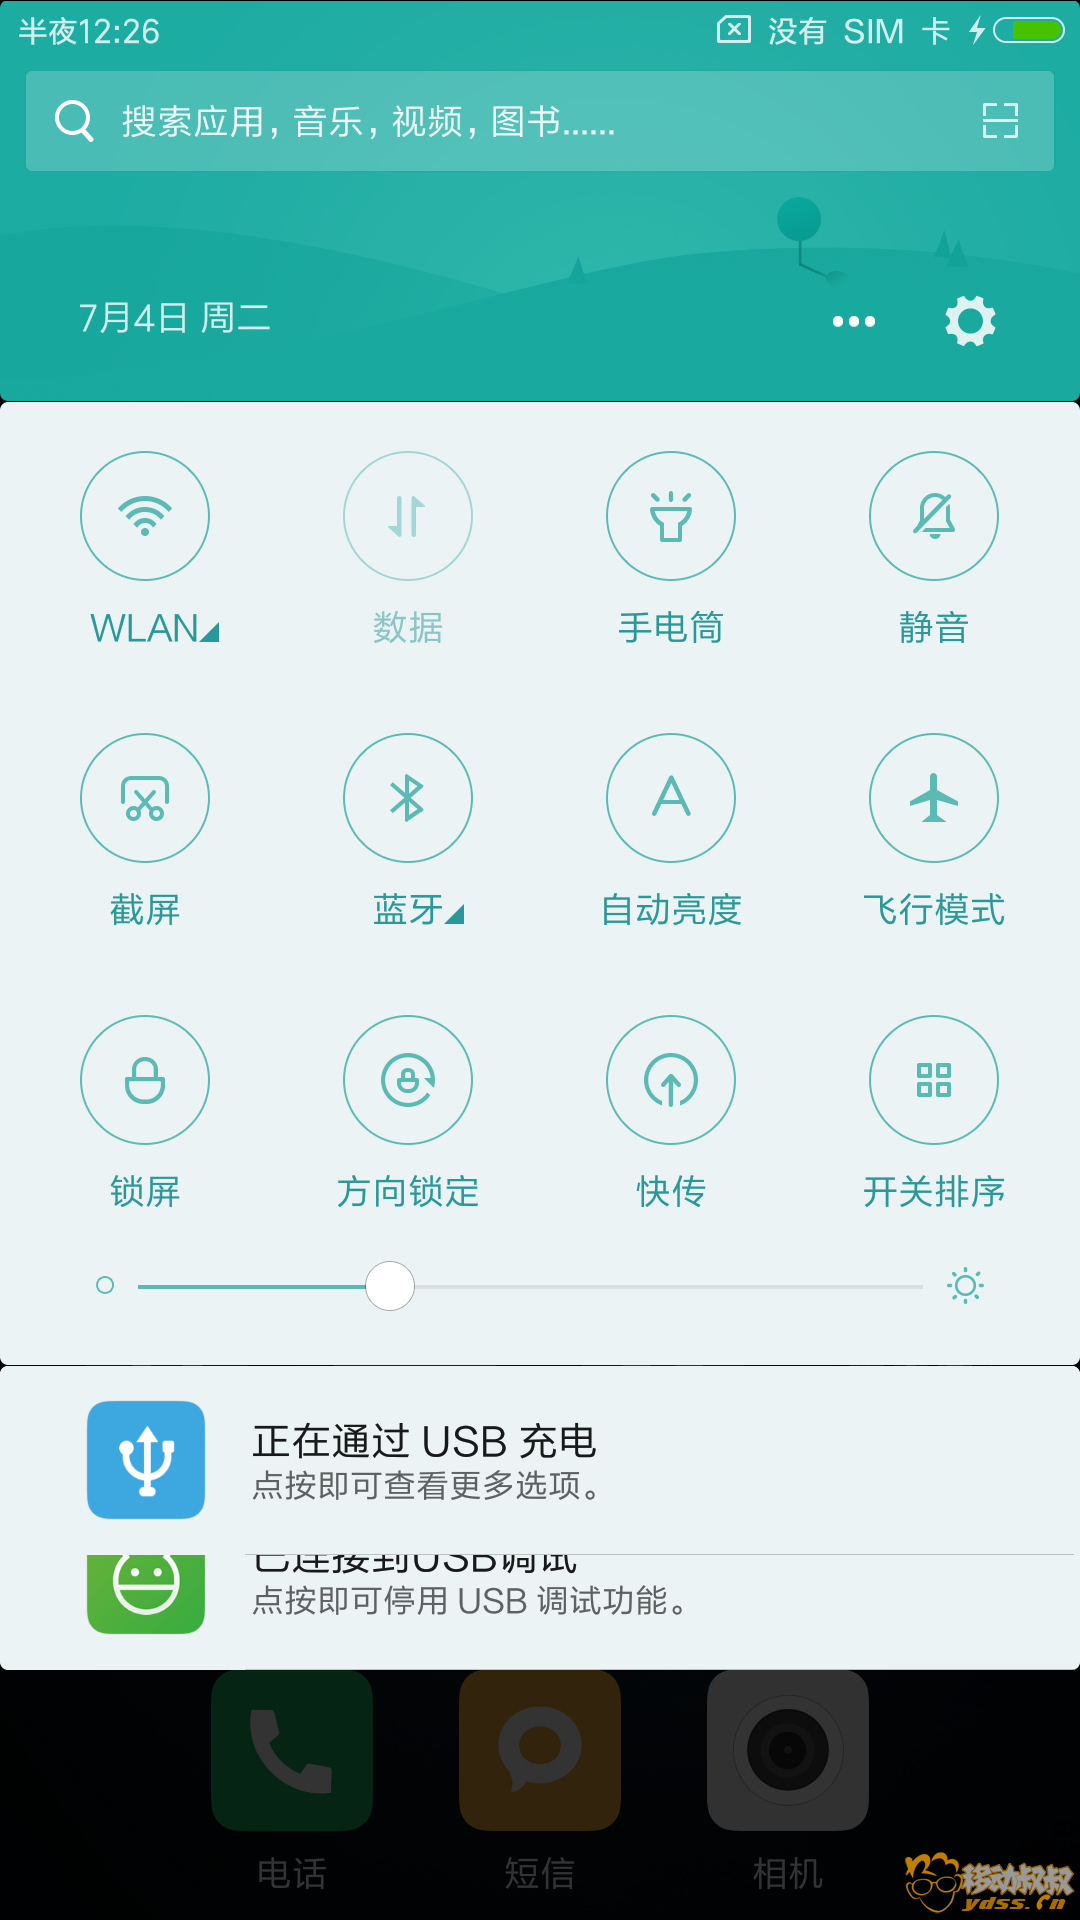 Screenshot_2017-07-04-00-26-59-425_com.miui.home - 副本.png